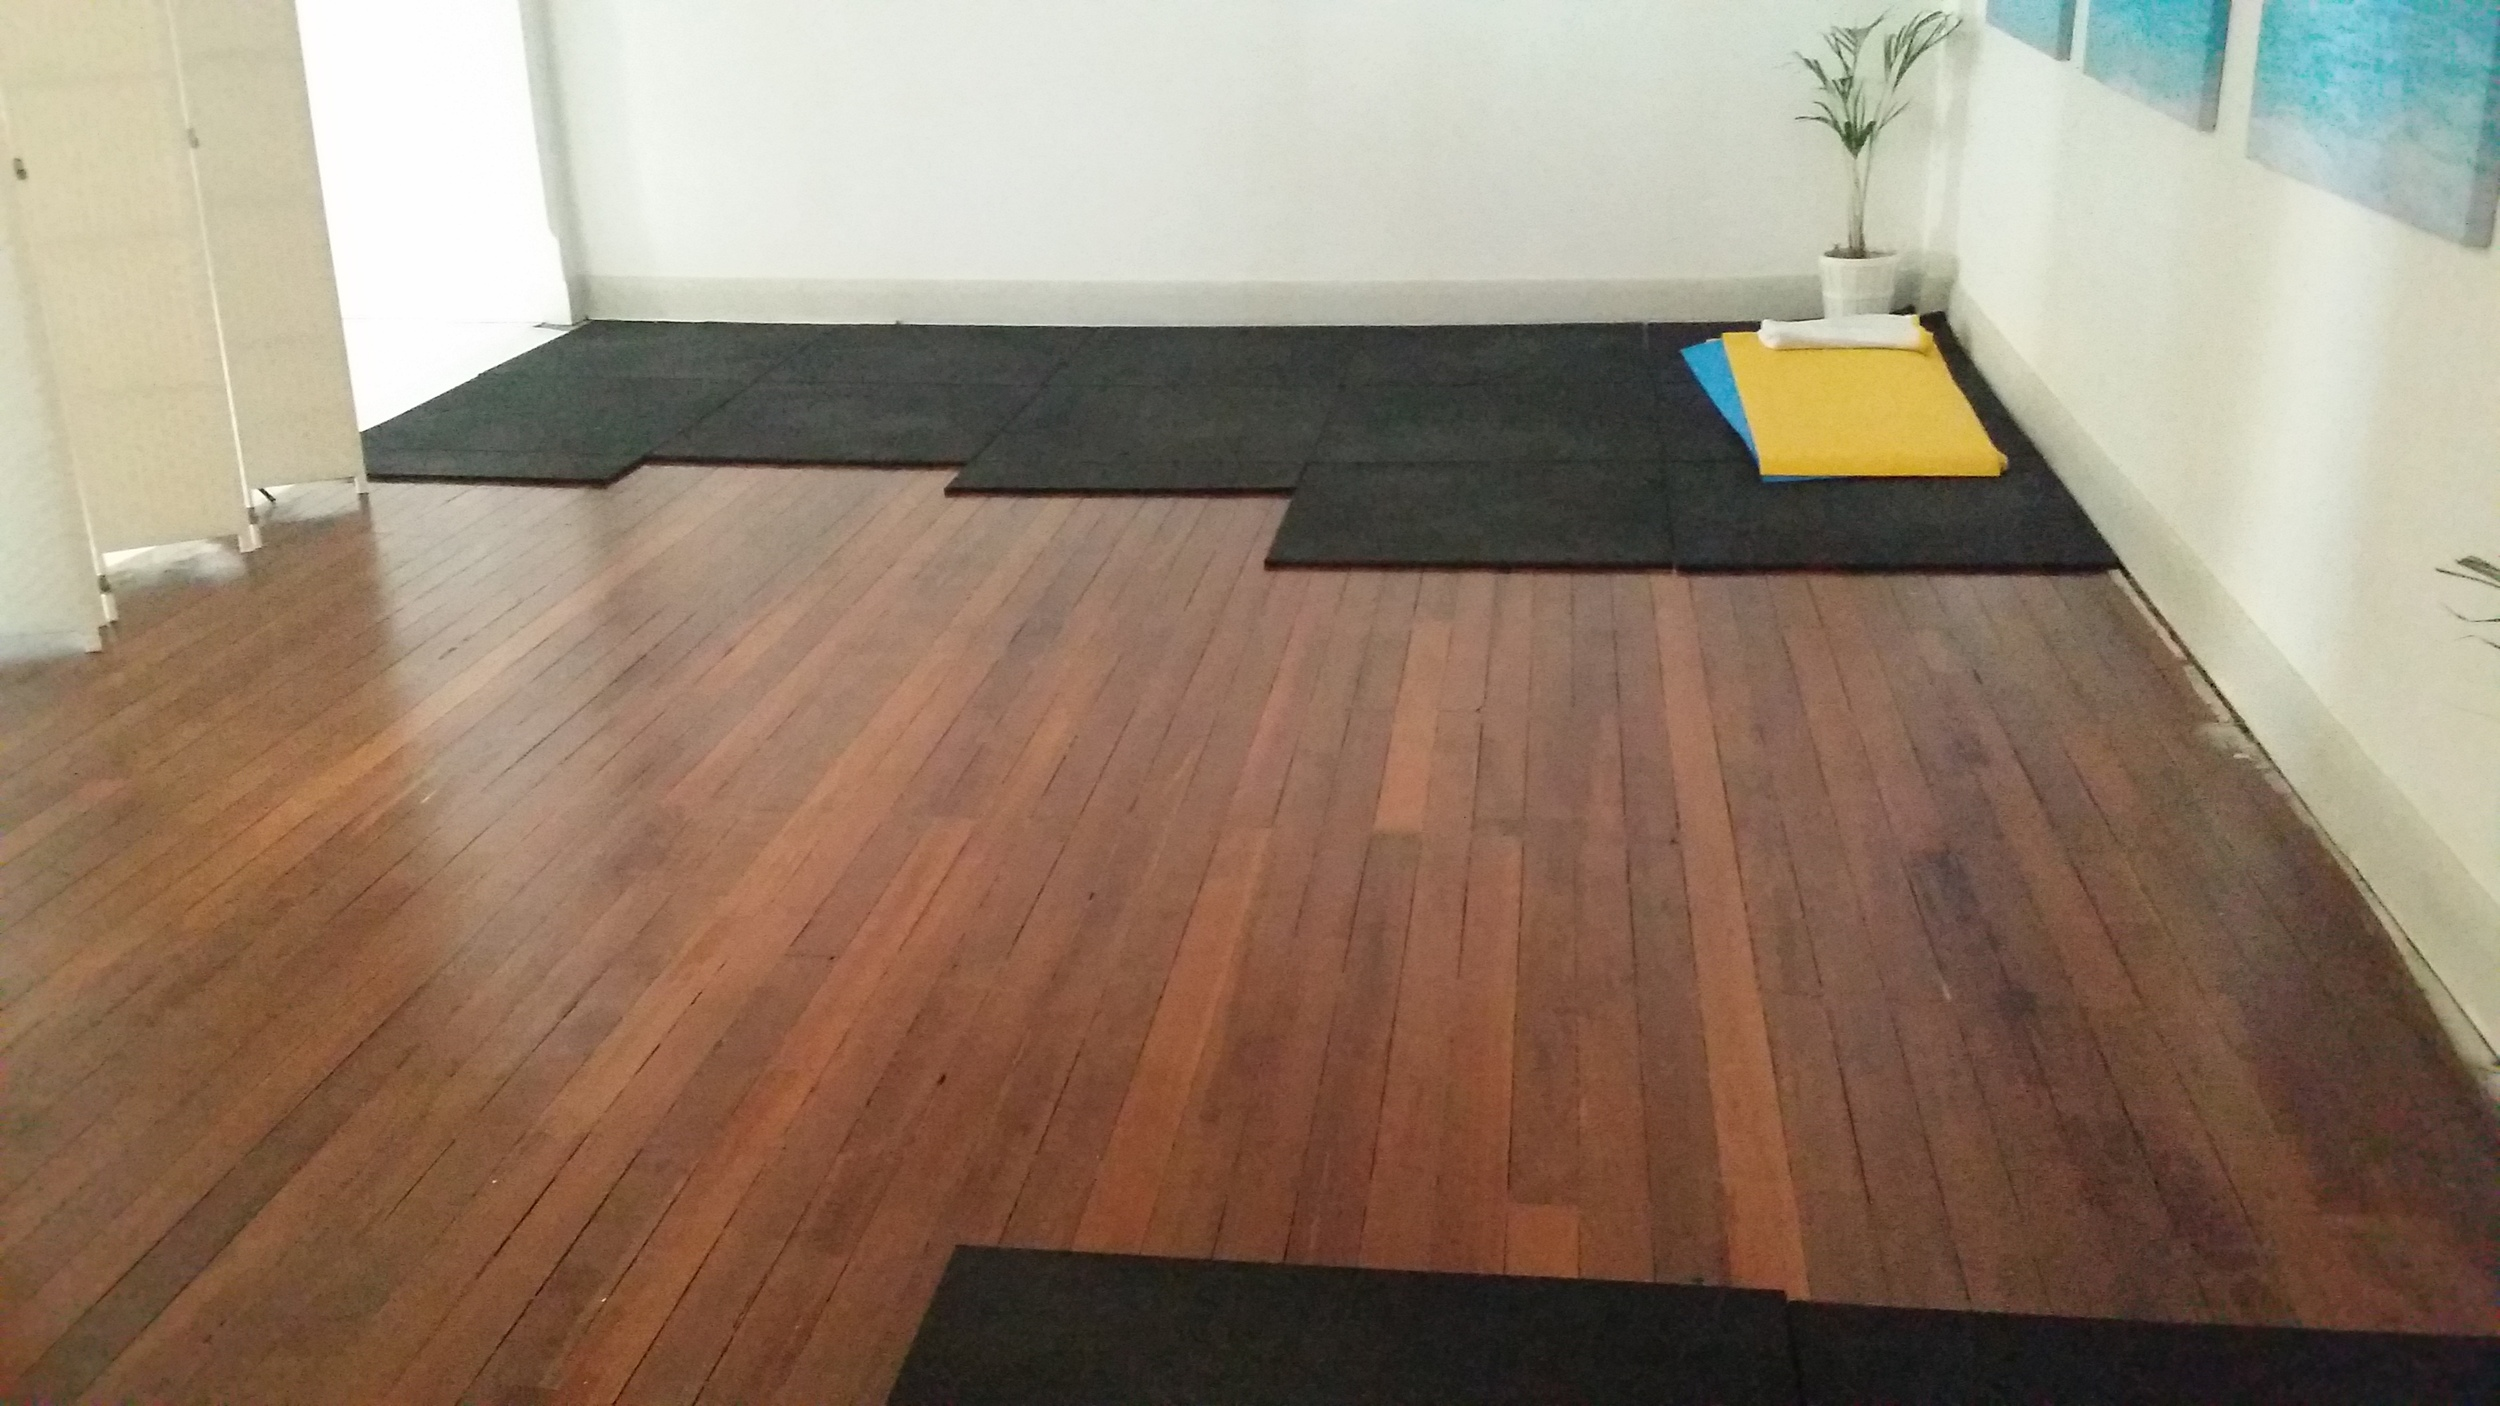 Moov Personal Training Adelaide: Old Studio space about to become new gym space